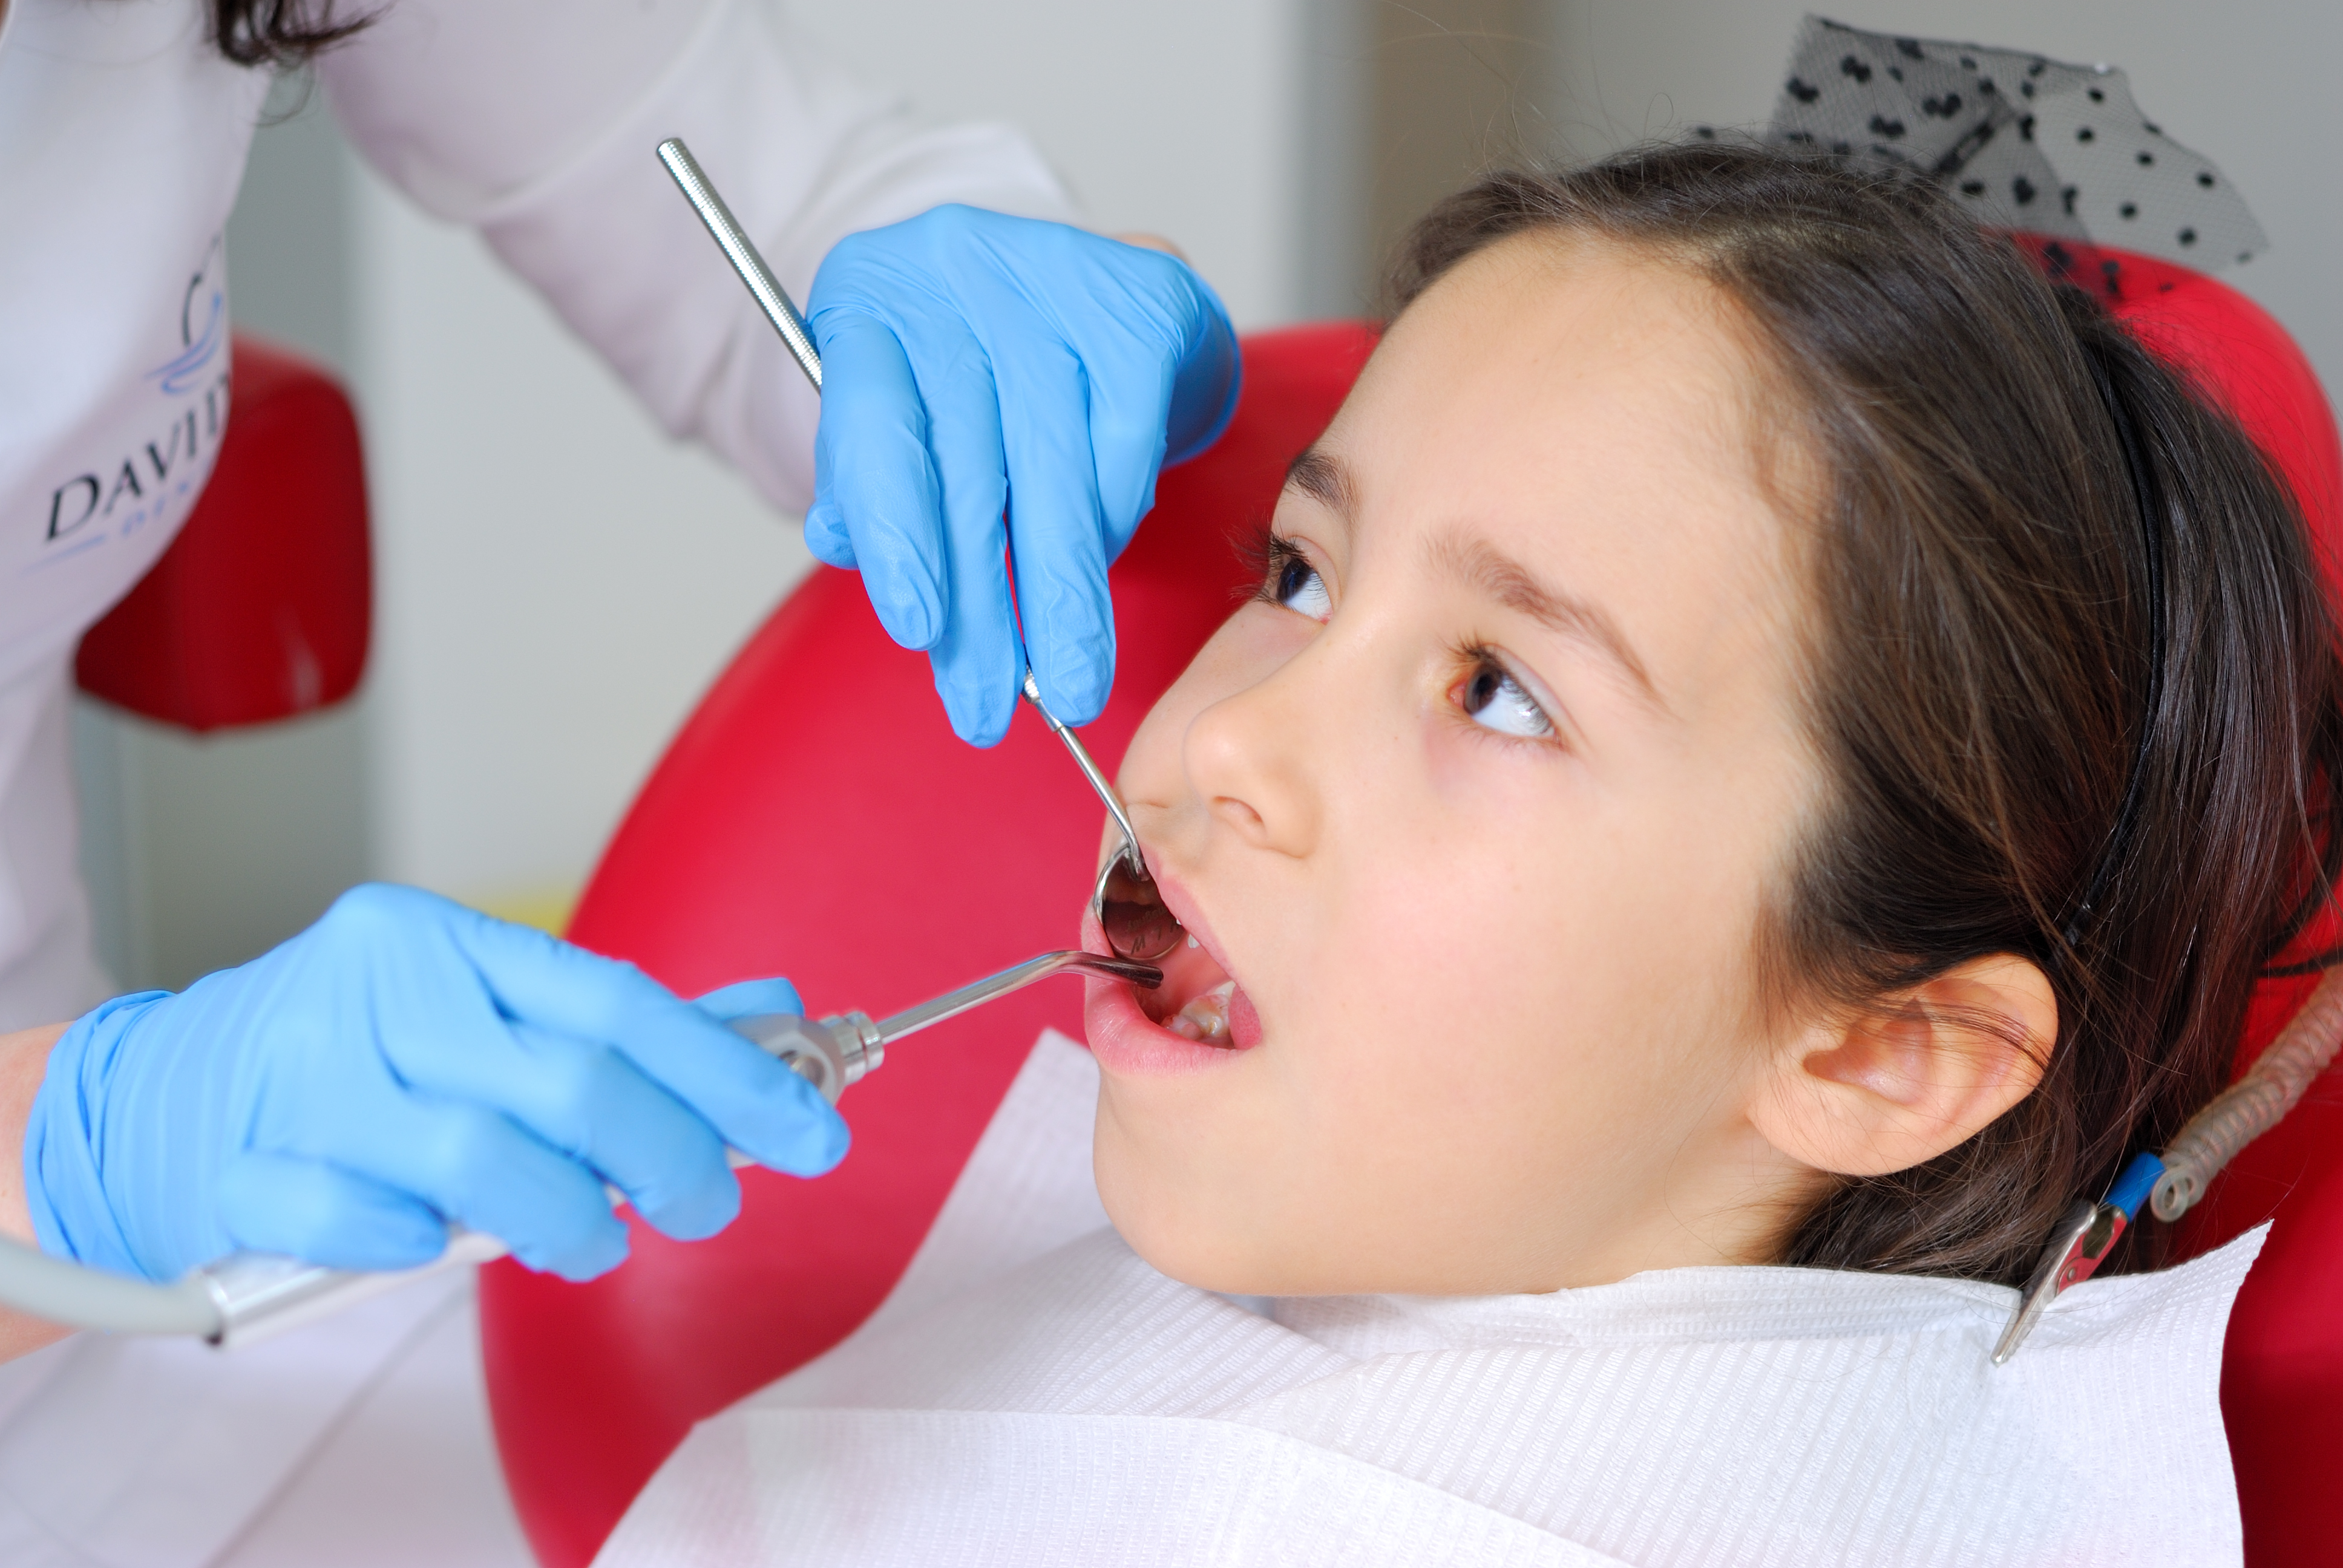 Treatment of caries